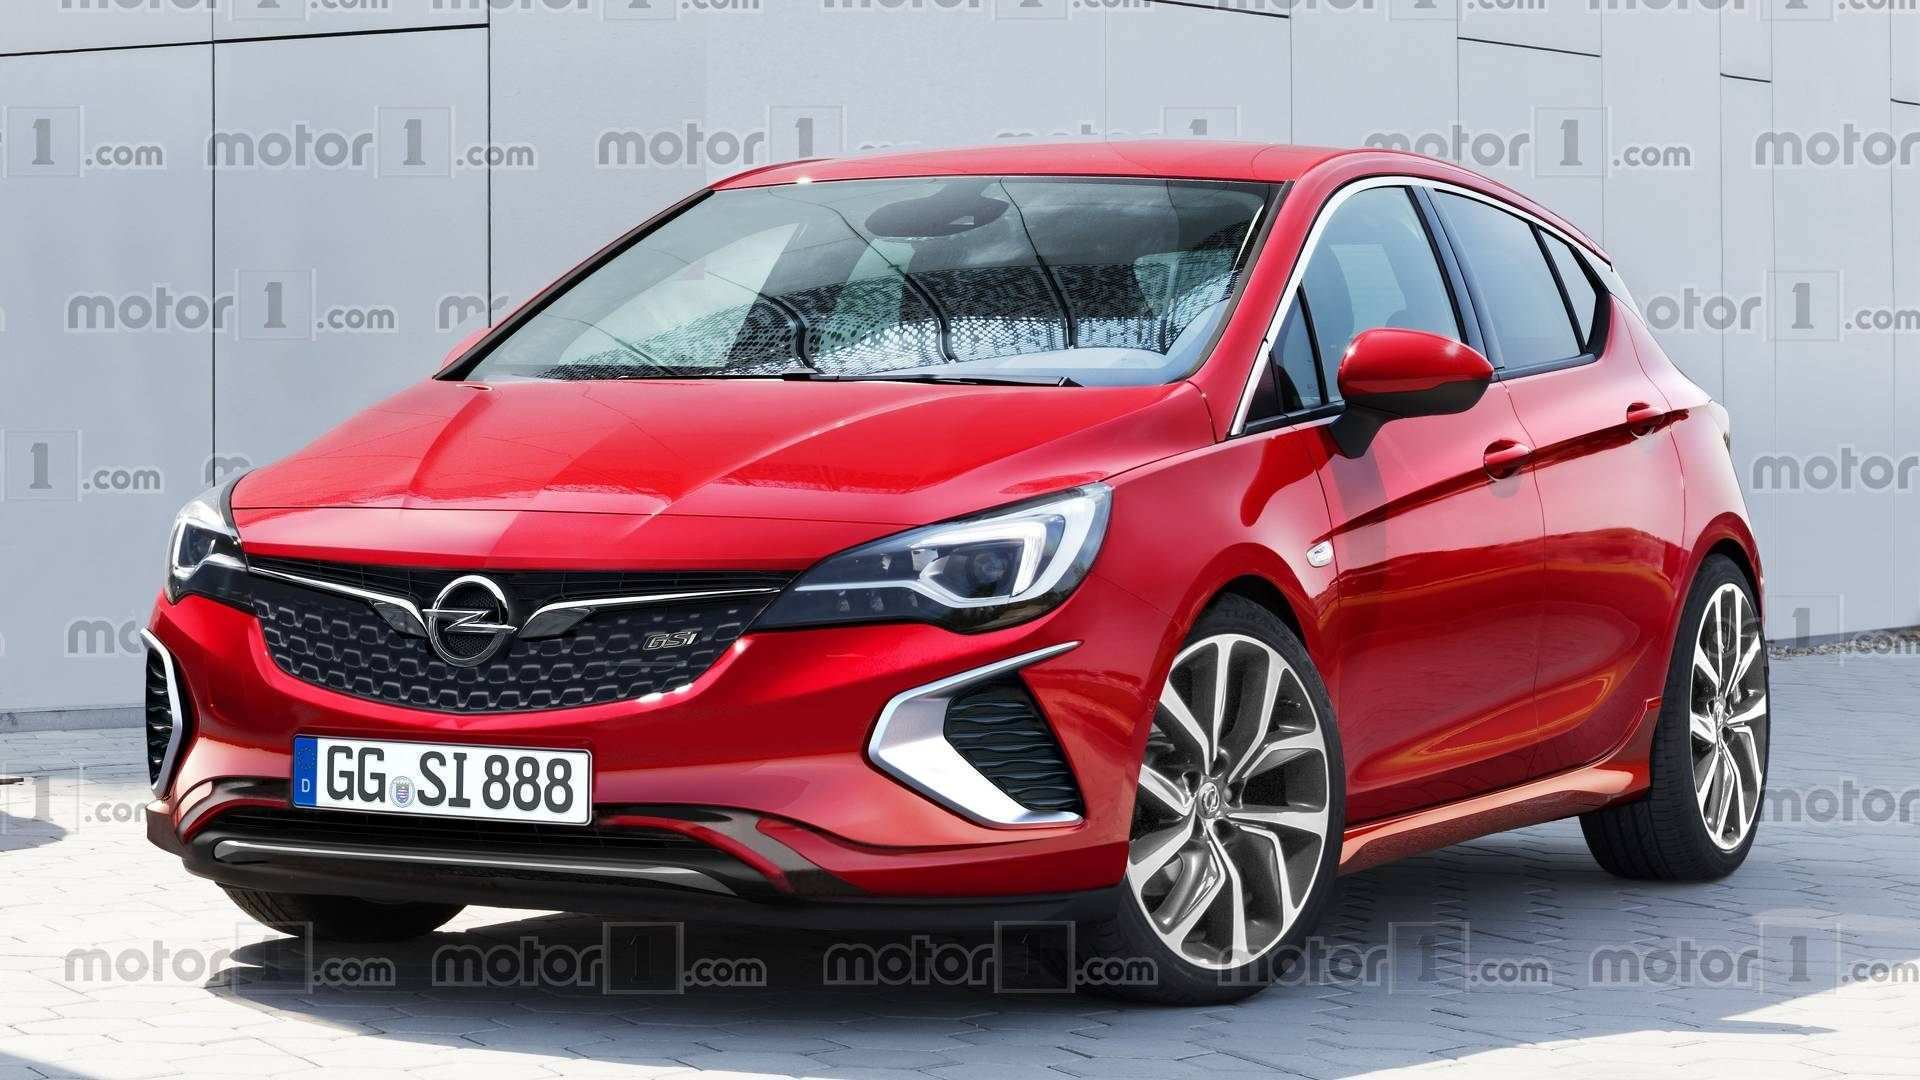 92 Gallery of Opel Gtc 2019 Engine by Opel Gtc 2019